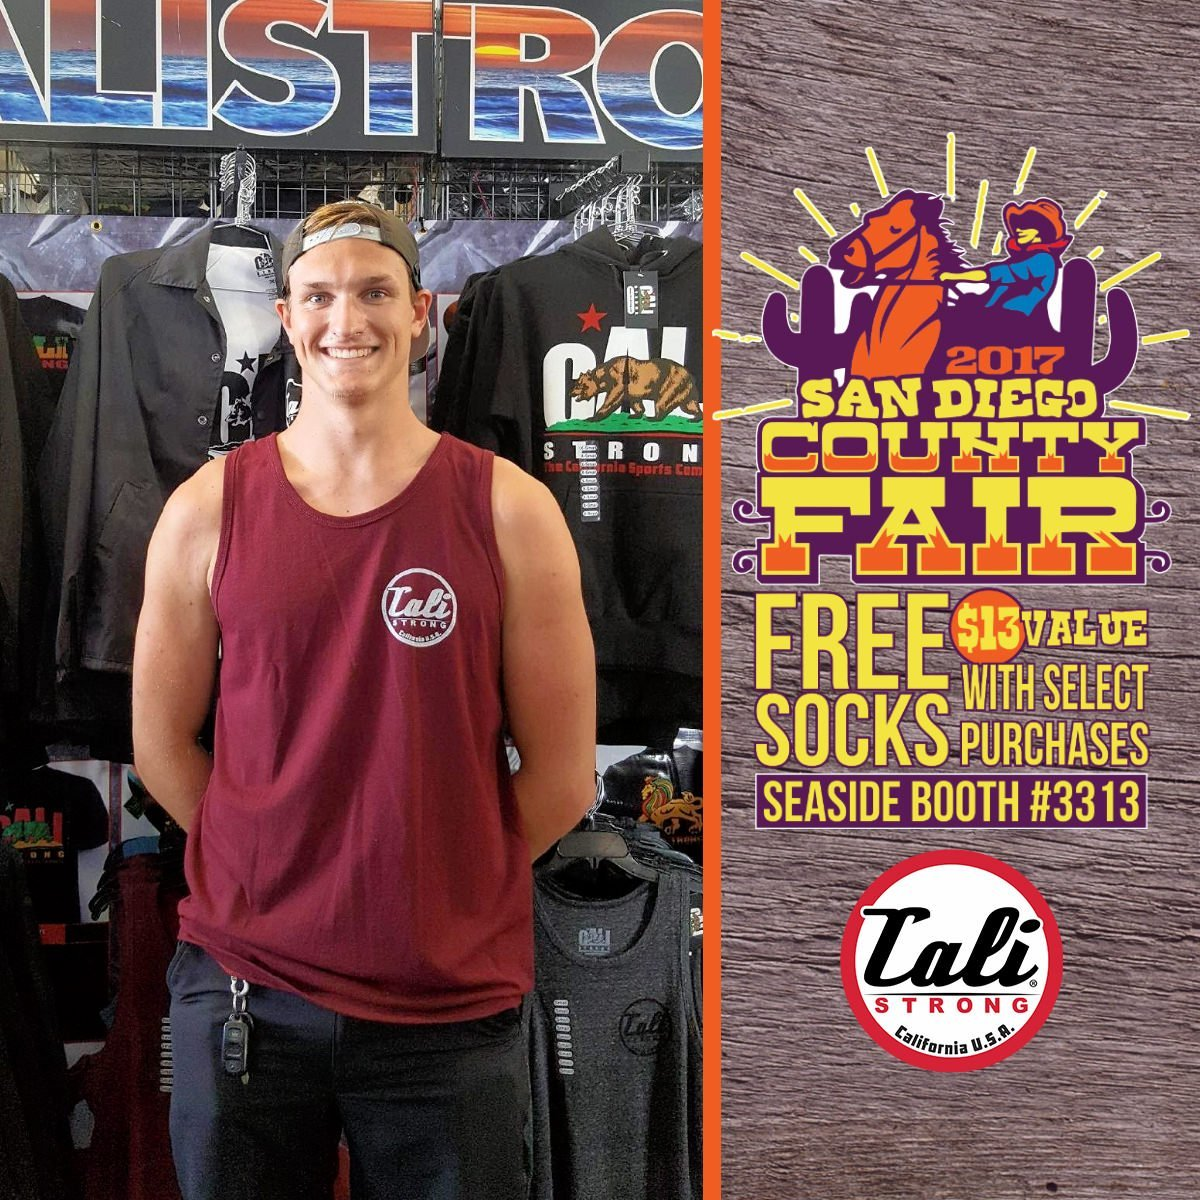 Check out Hunter in his new maroon heather tank from CALI Strong at the San Diego County Fair Seaside Tent Booth 3313!